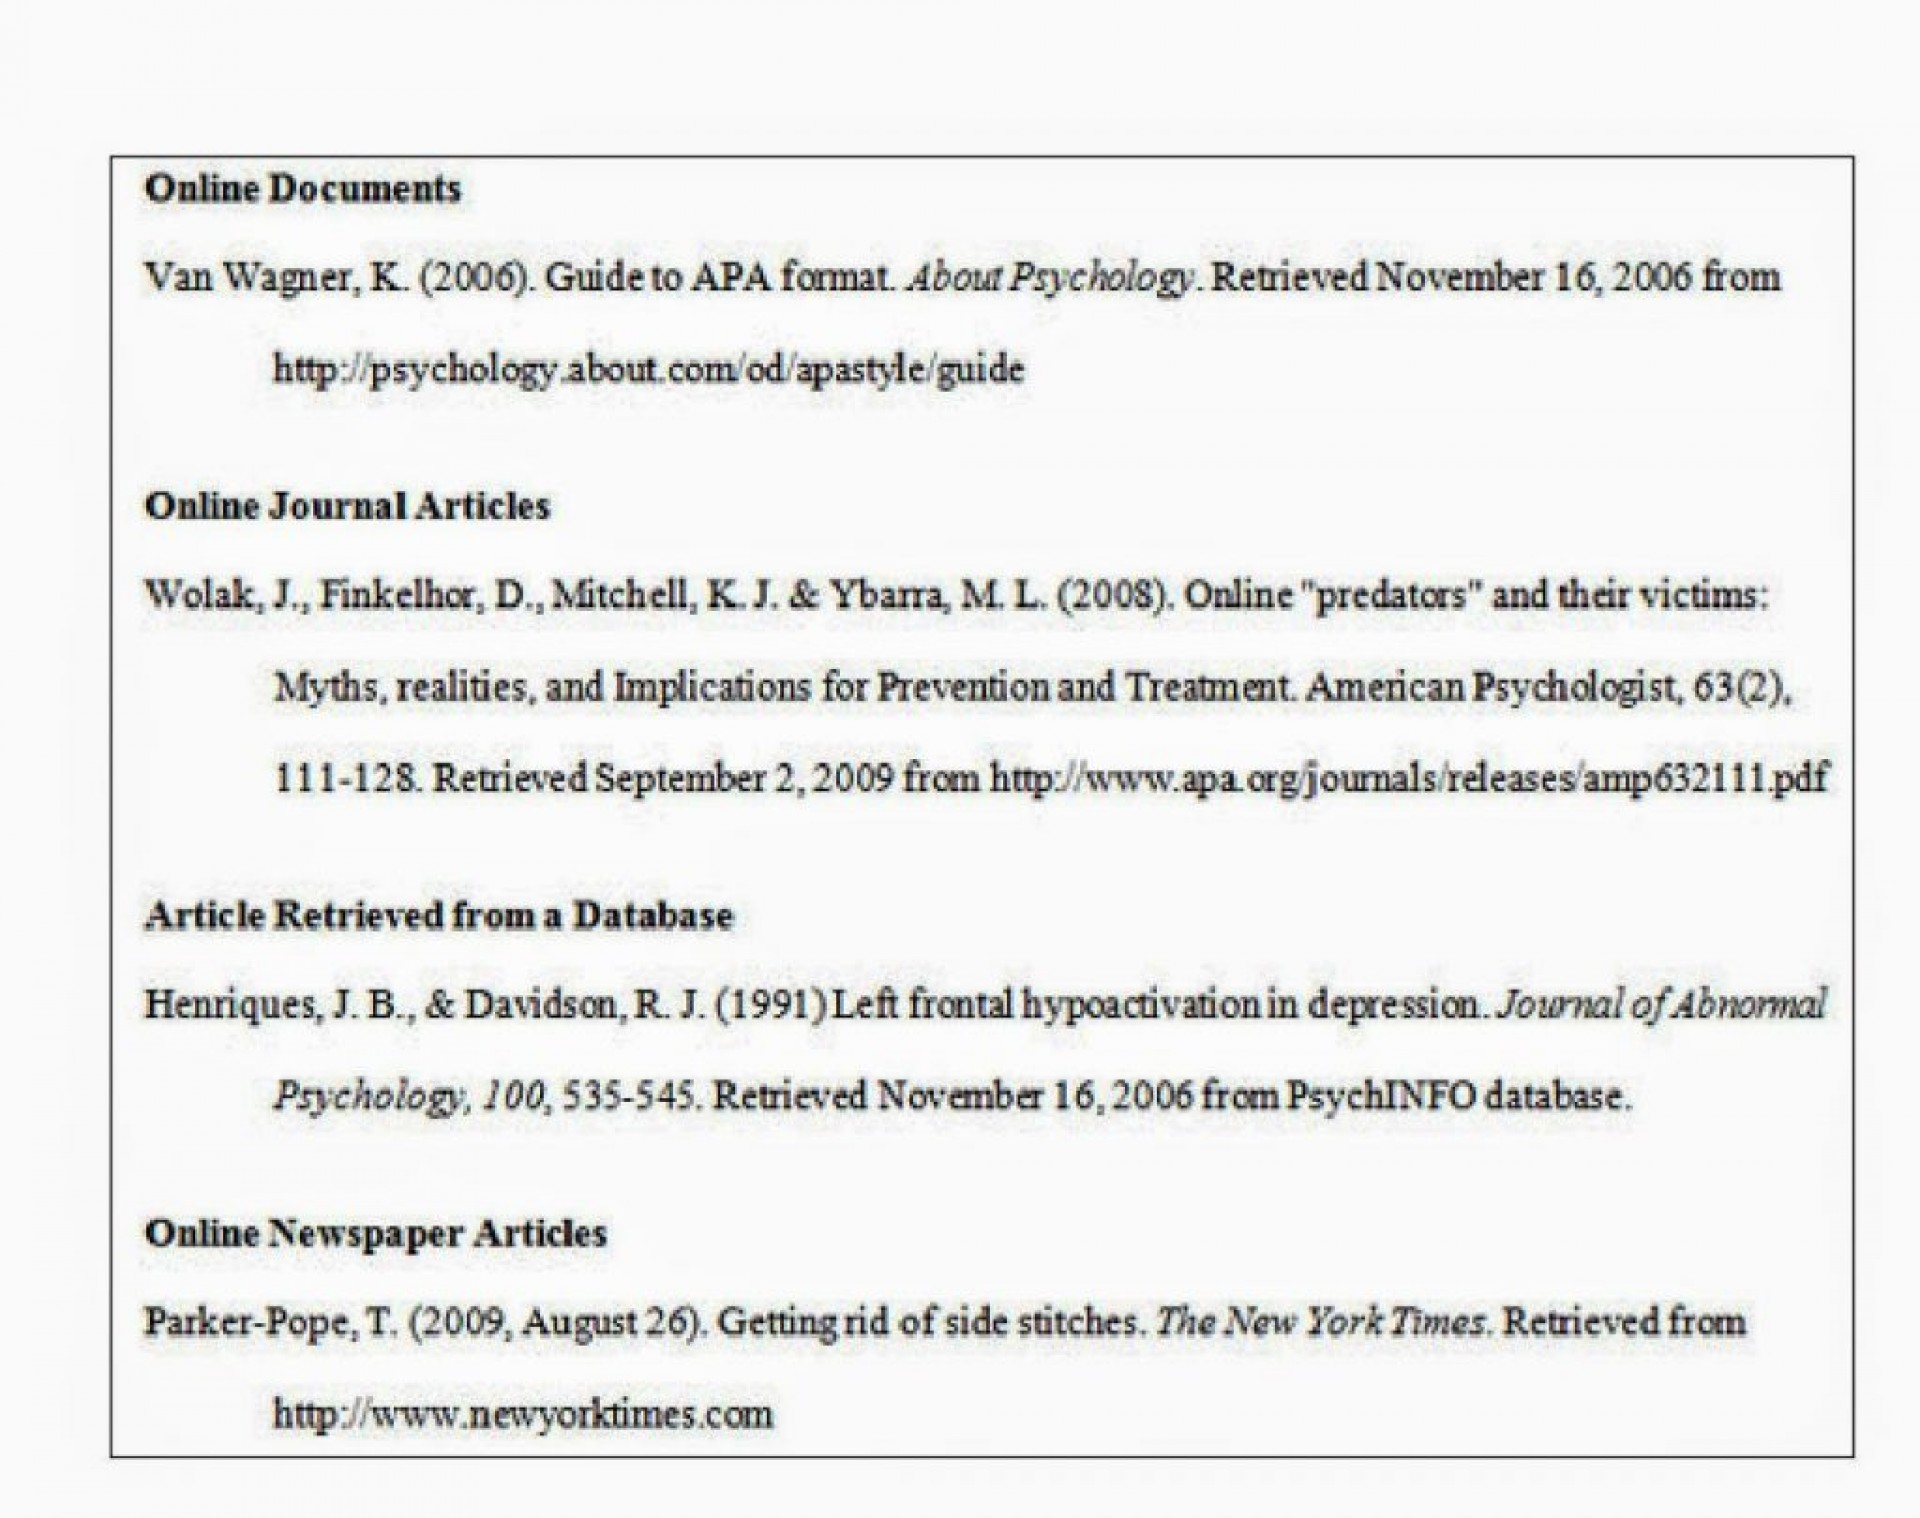 013 20research Paper Example Apa Format 6th Edition Outline Sample20 1024x810 Research Career Amazing Pdf 1920